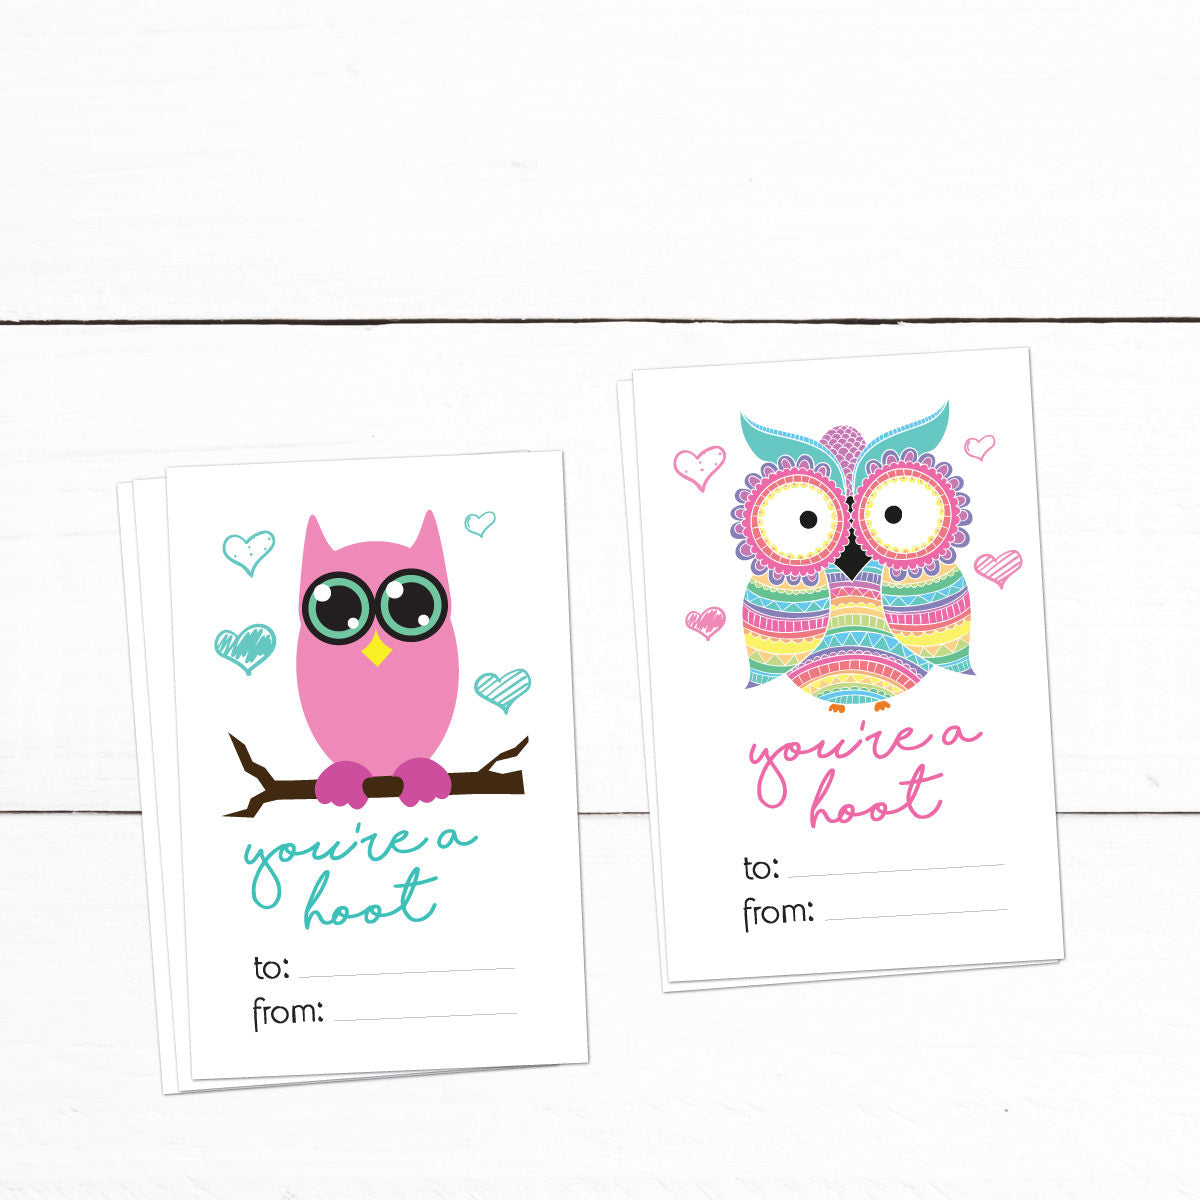 Owl Valentines Day Cards - Kids Valentines Cards - Printable Valentines Day Cards - Owls - Valentine Card Template - Automatic Download